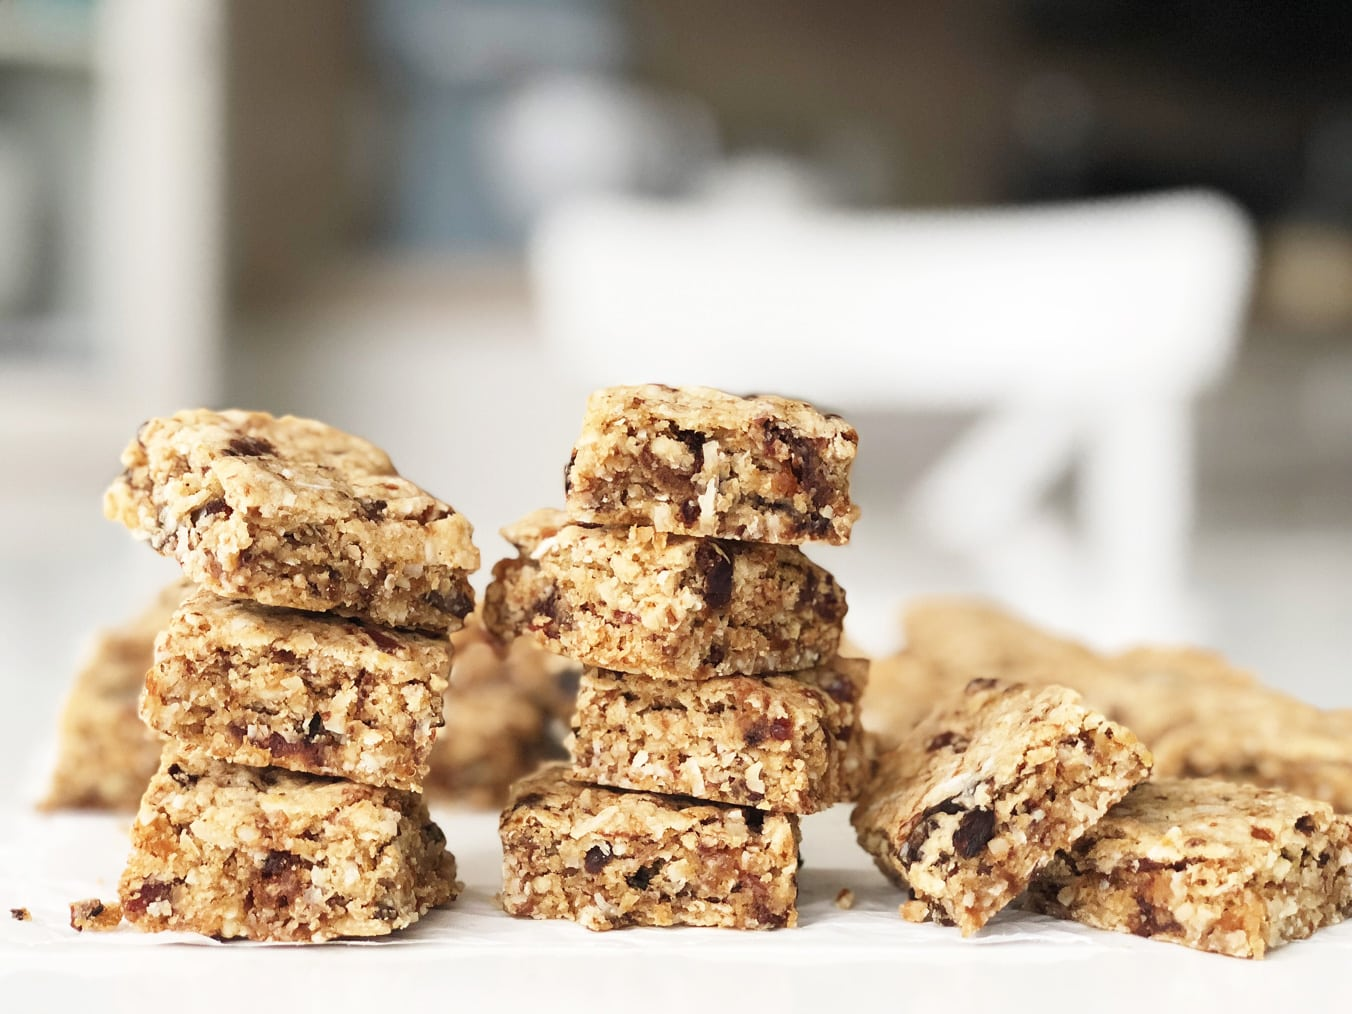 Classic Baking Recipes: Chewy Oat Date Bars